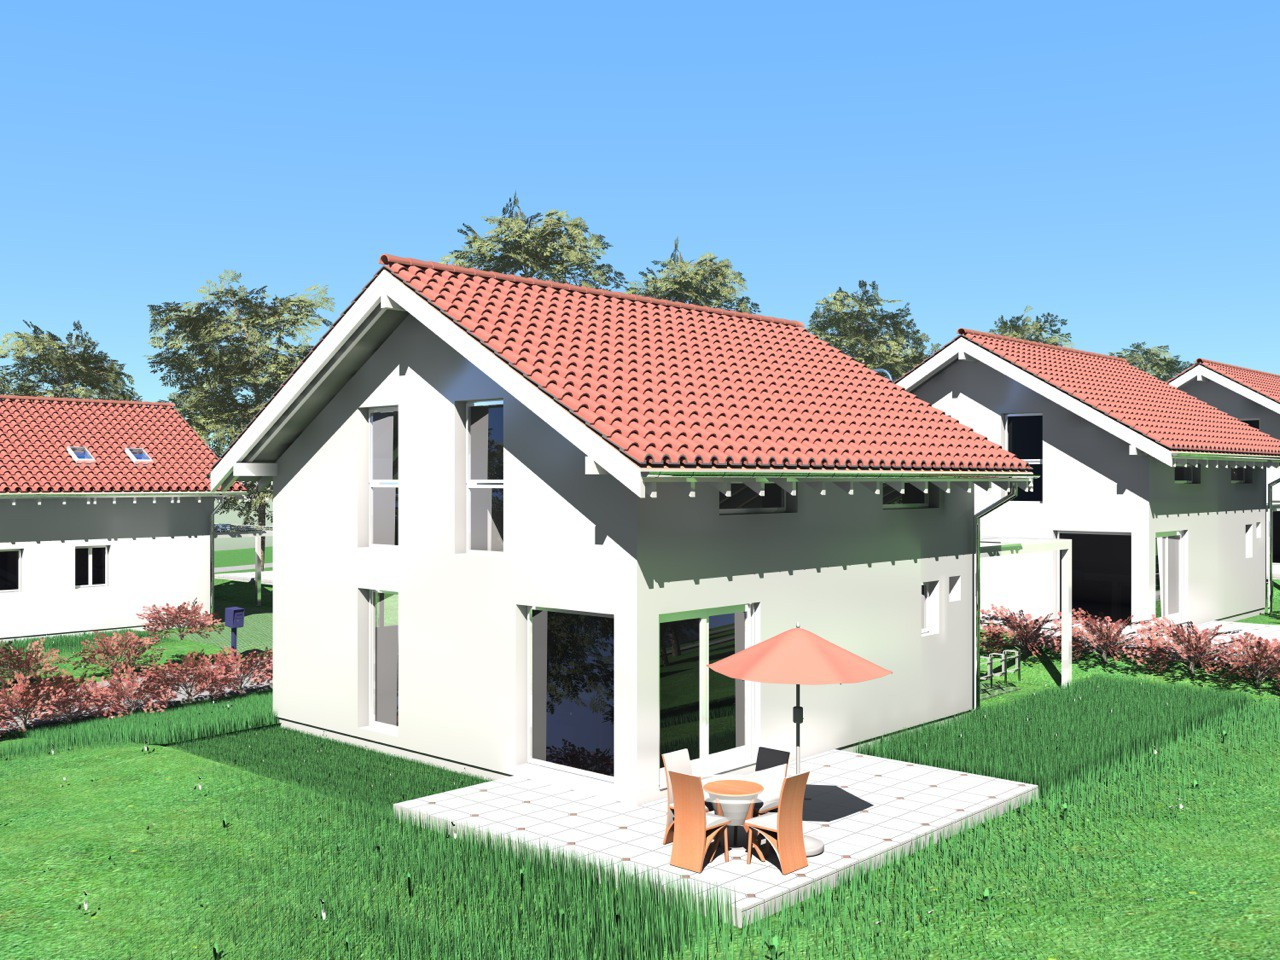 Detached House For Sale in Fribourg - 6 Photos